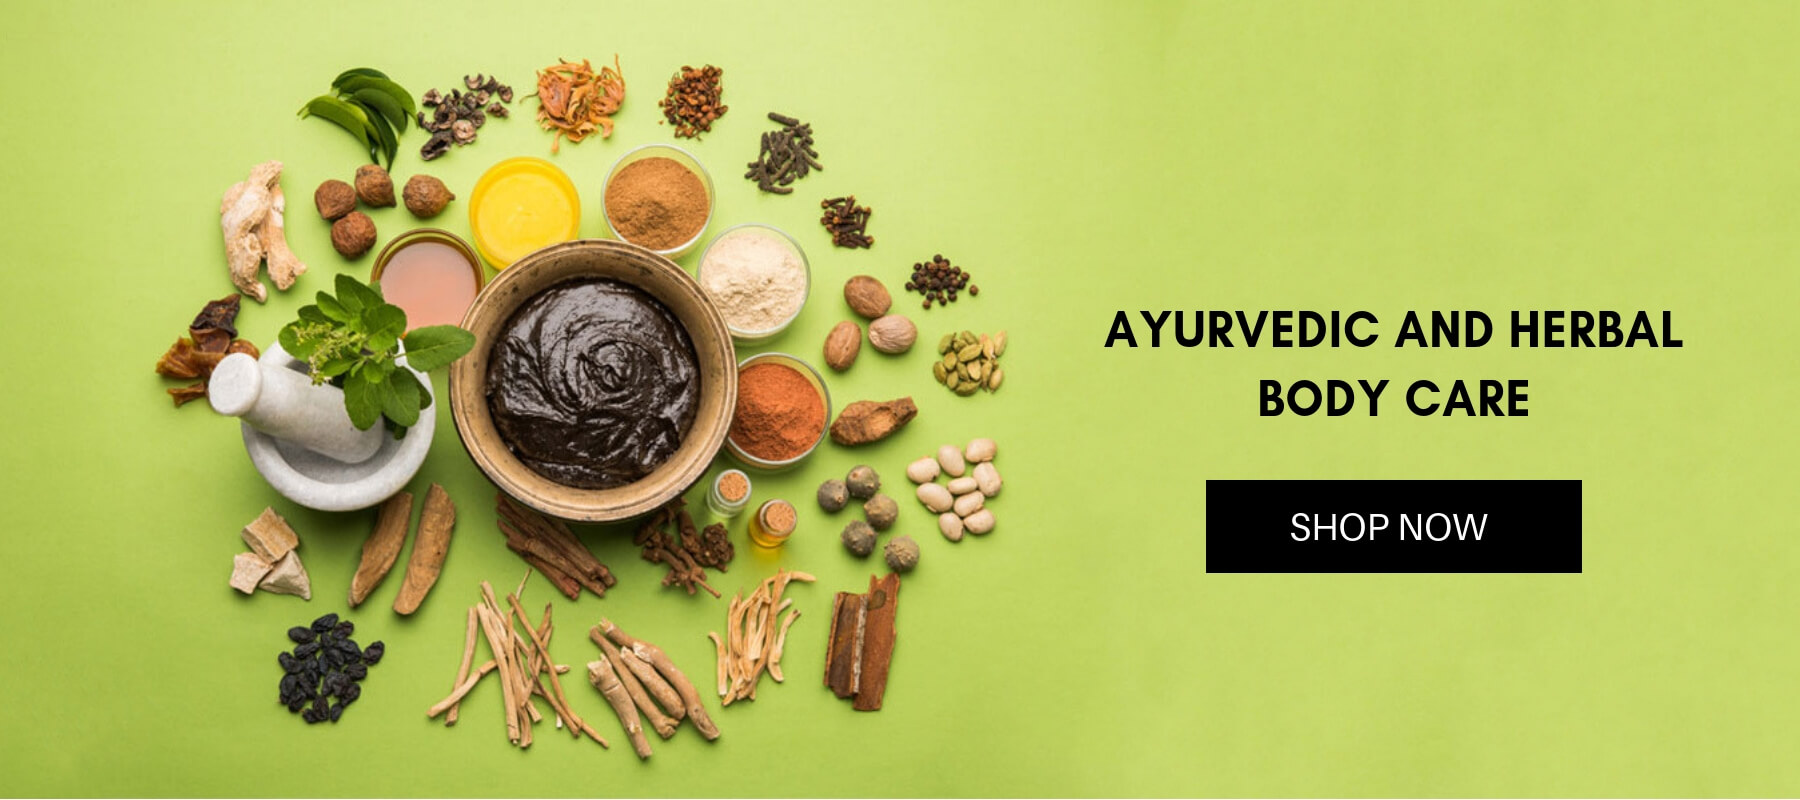 ayurvedic and herbal